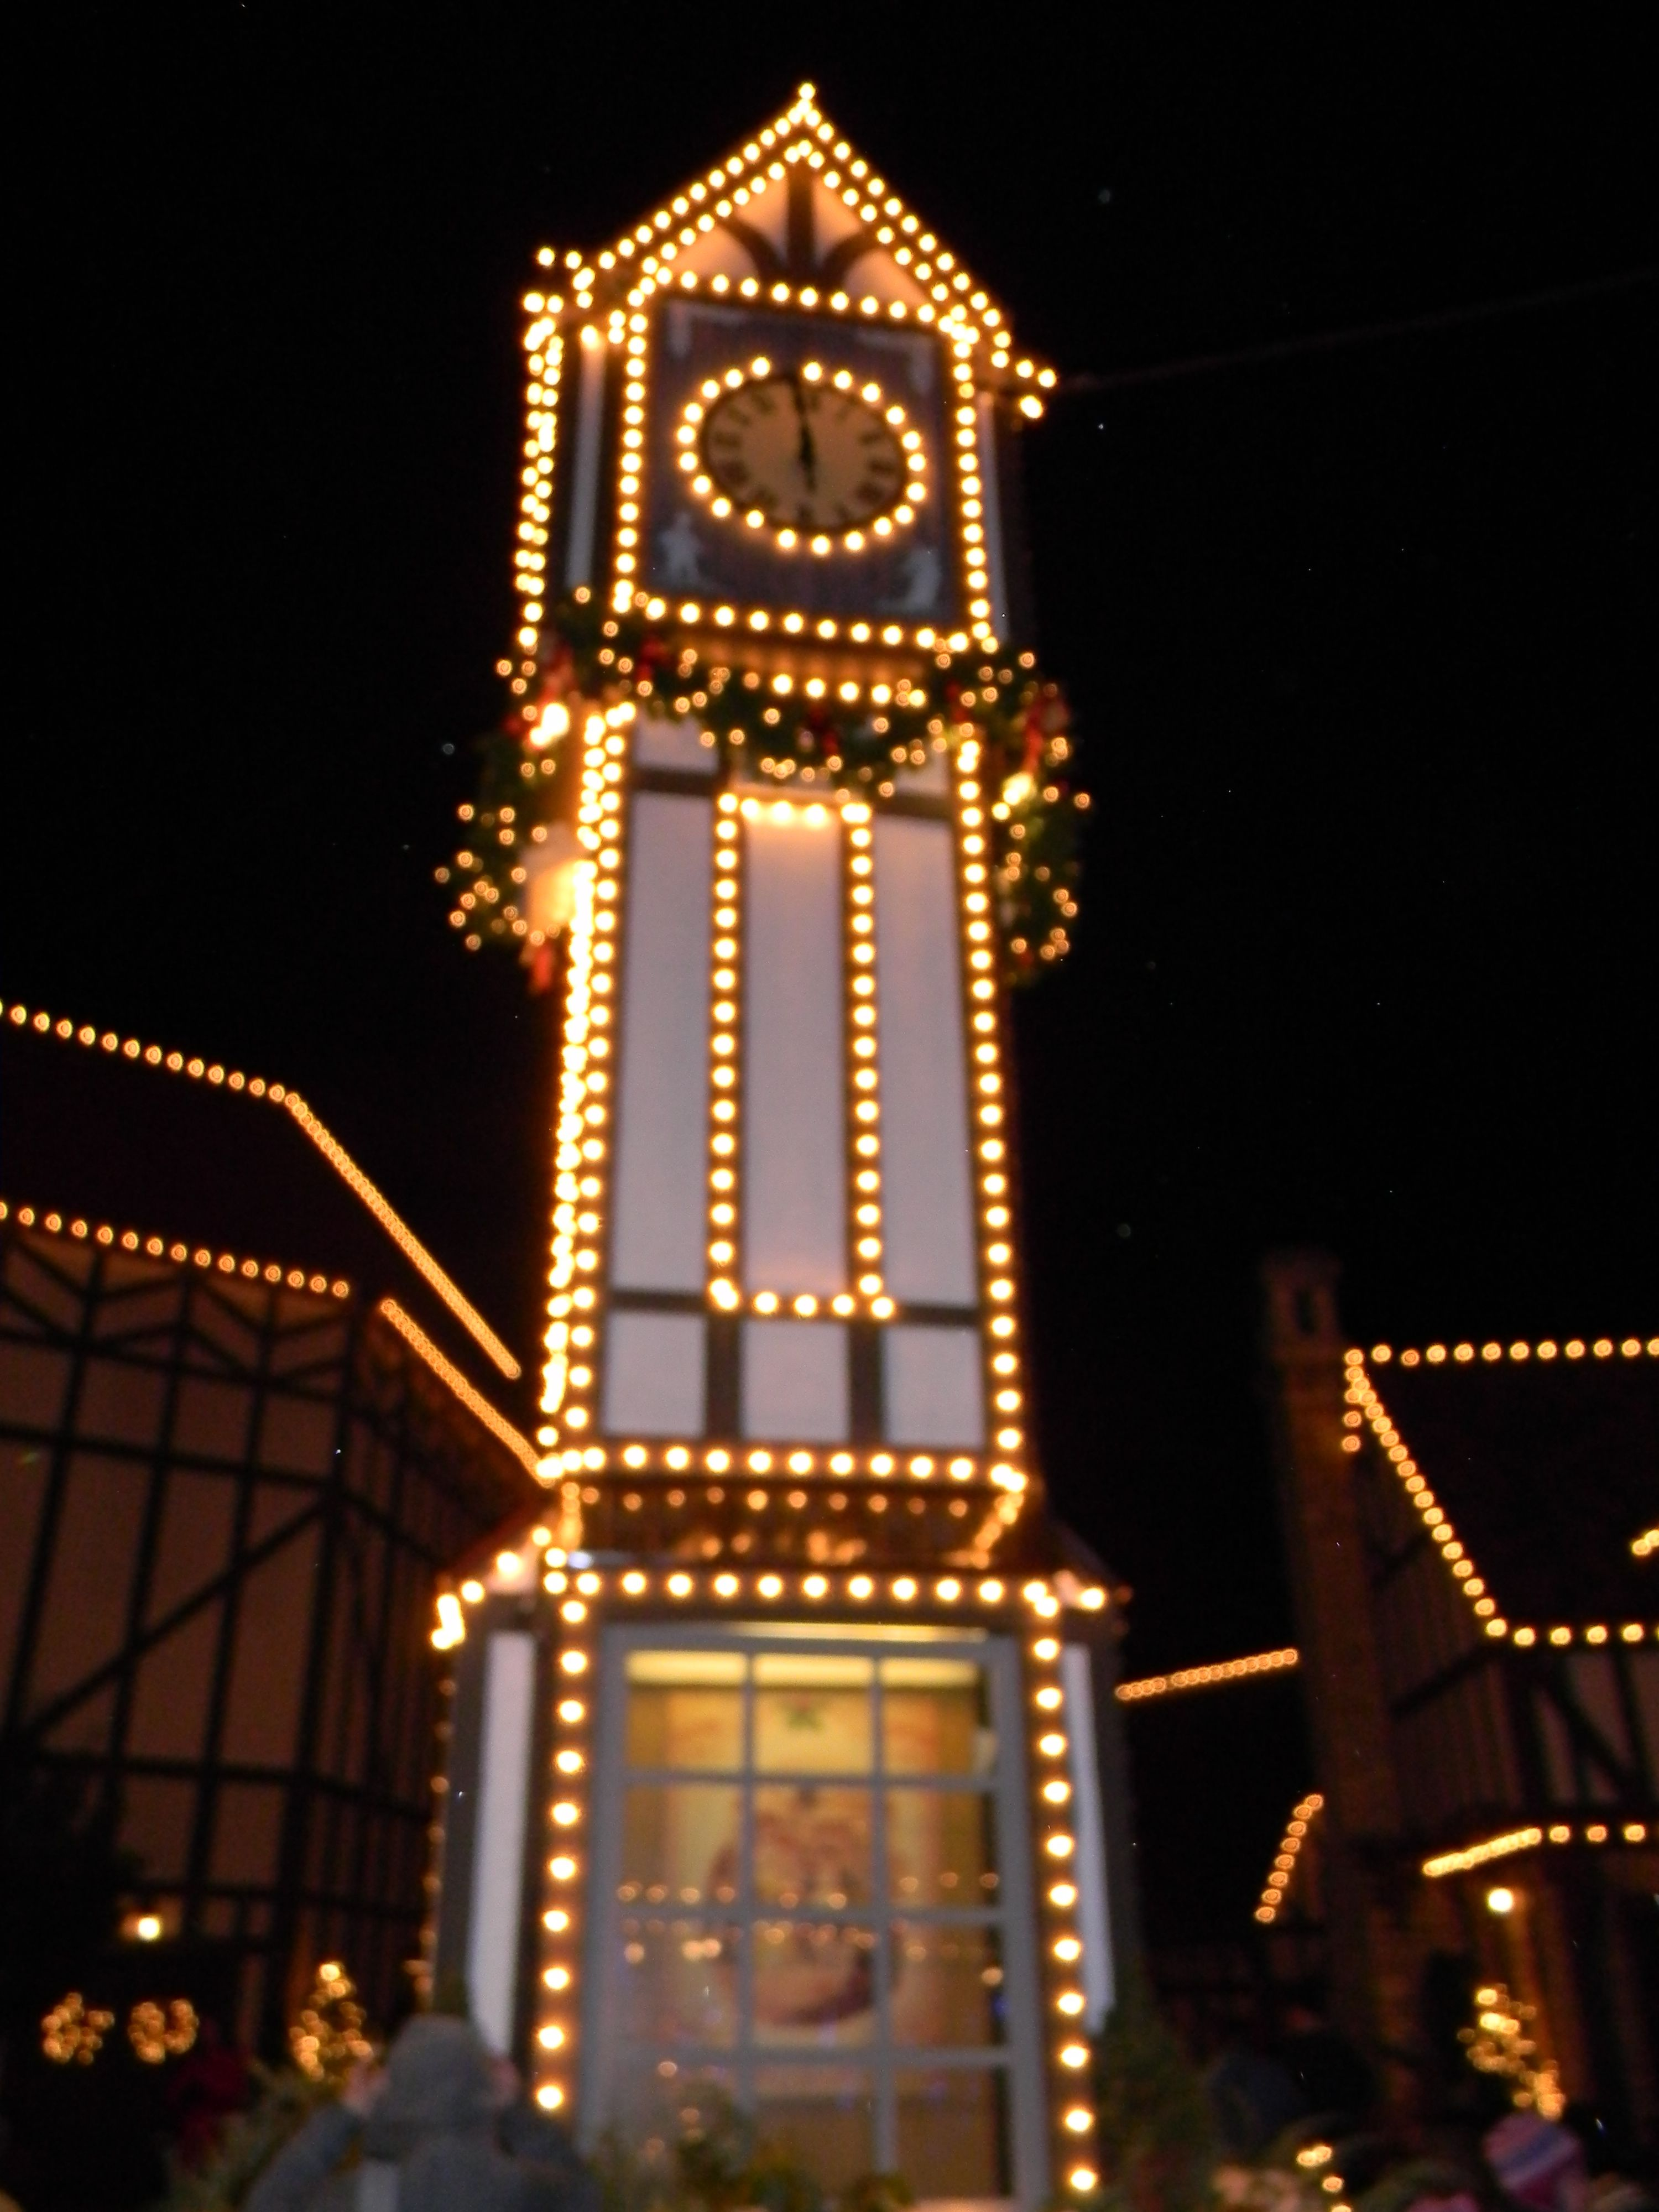 Lighted clock tower photo